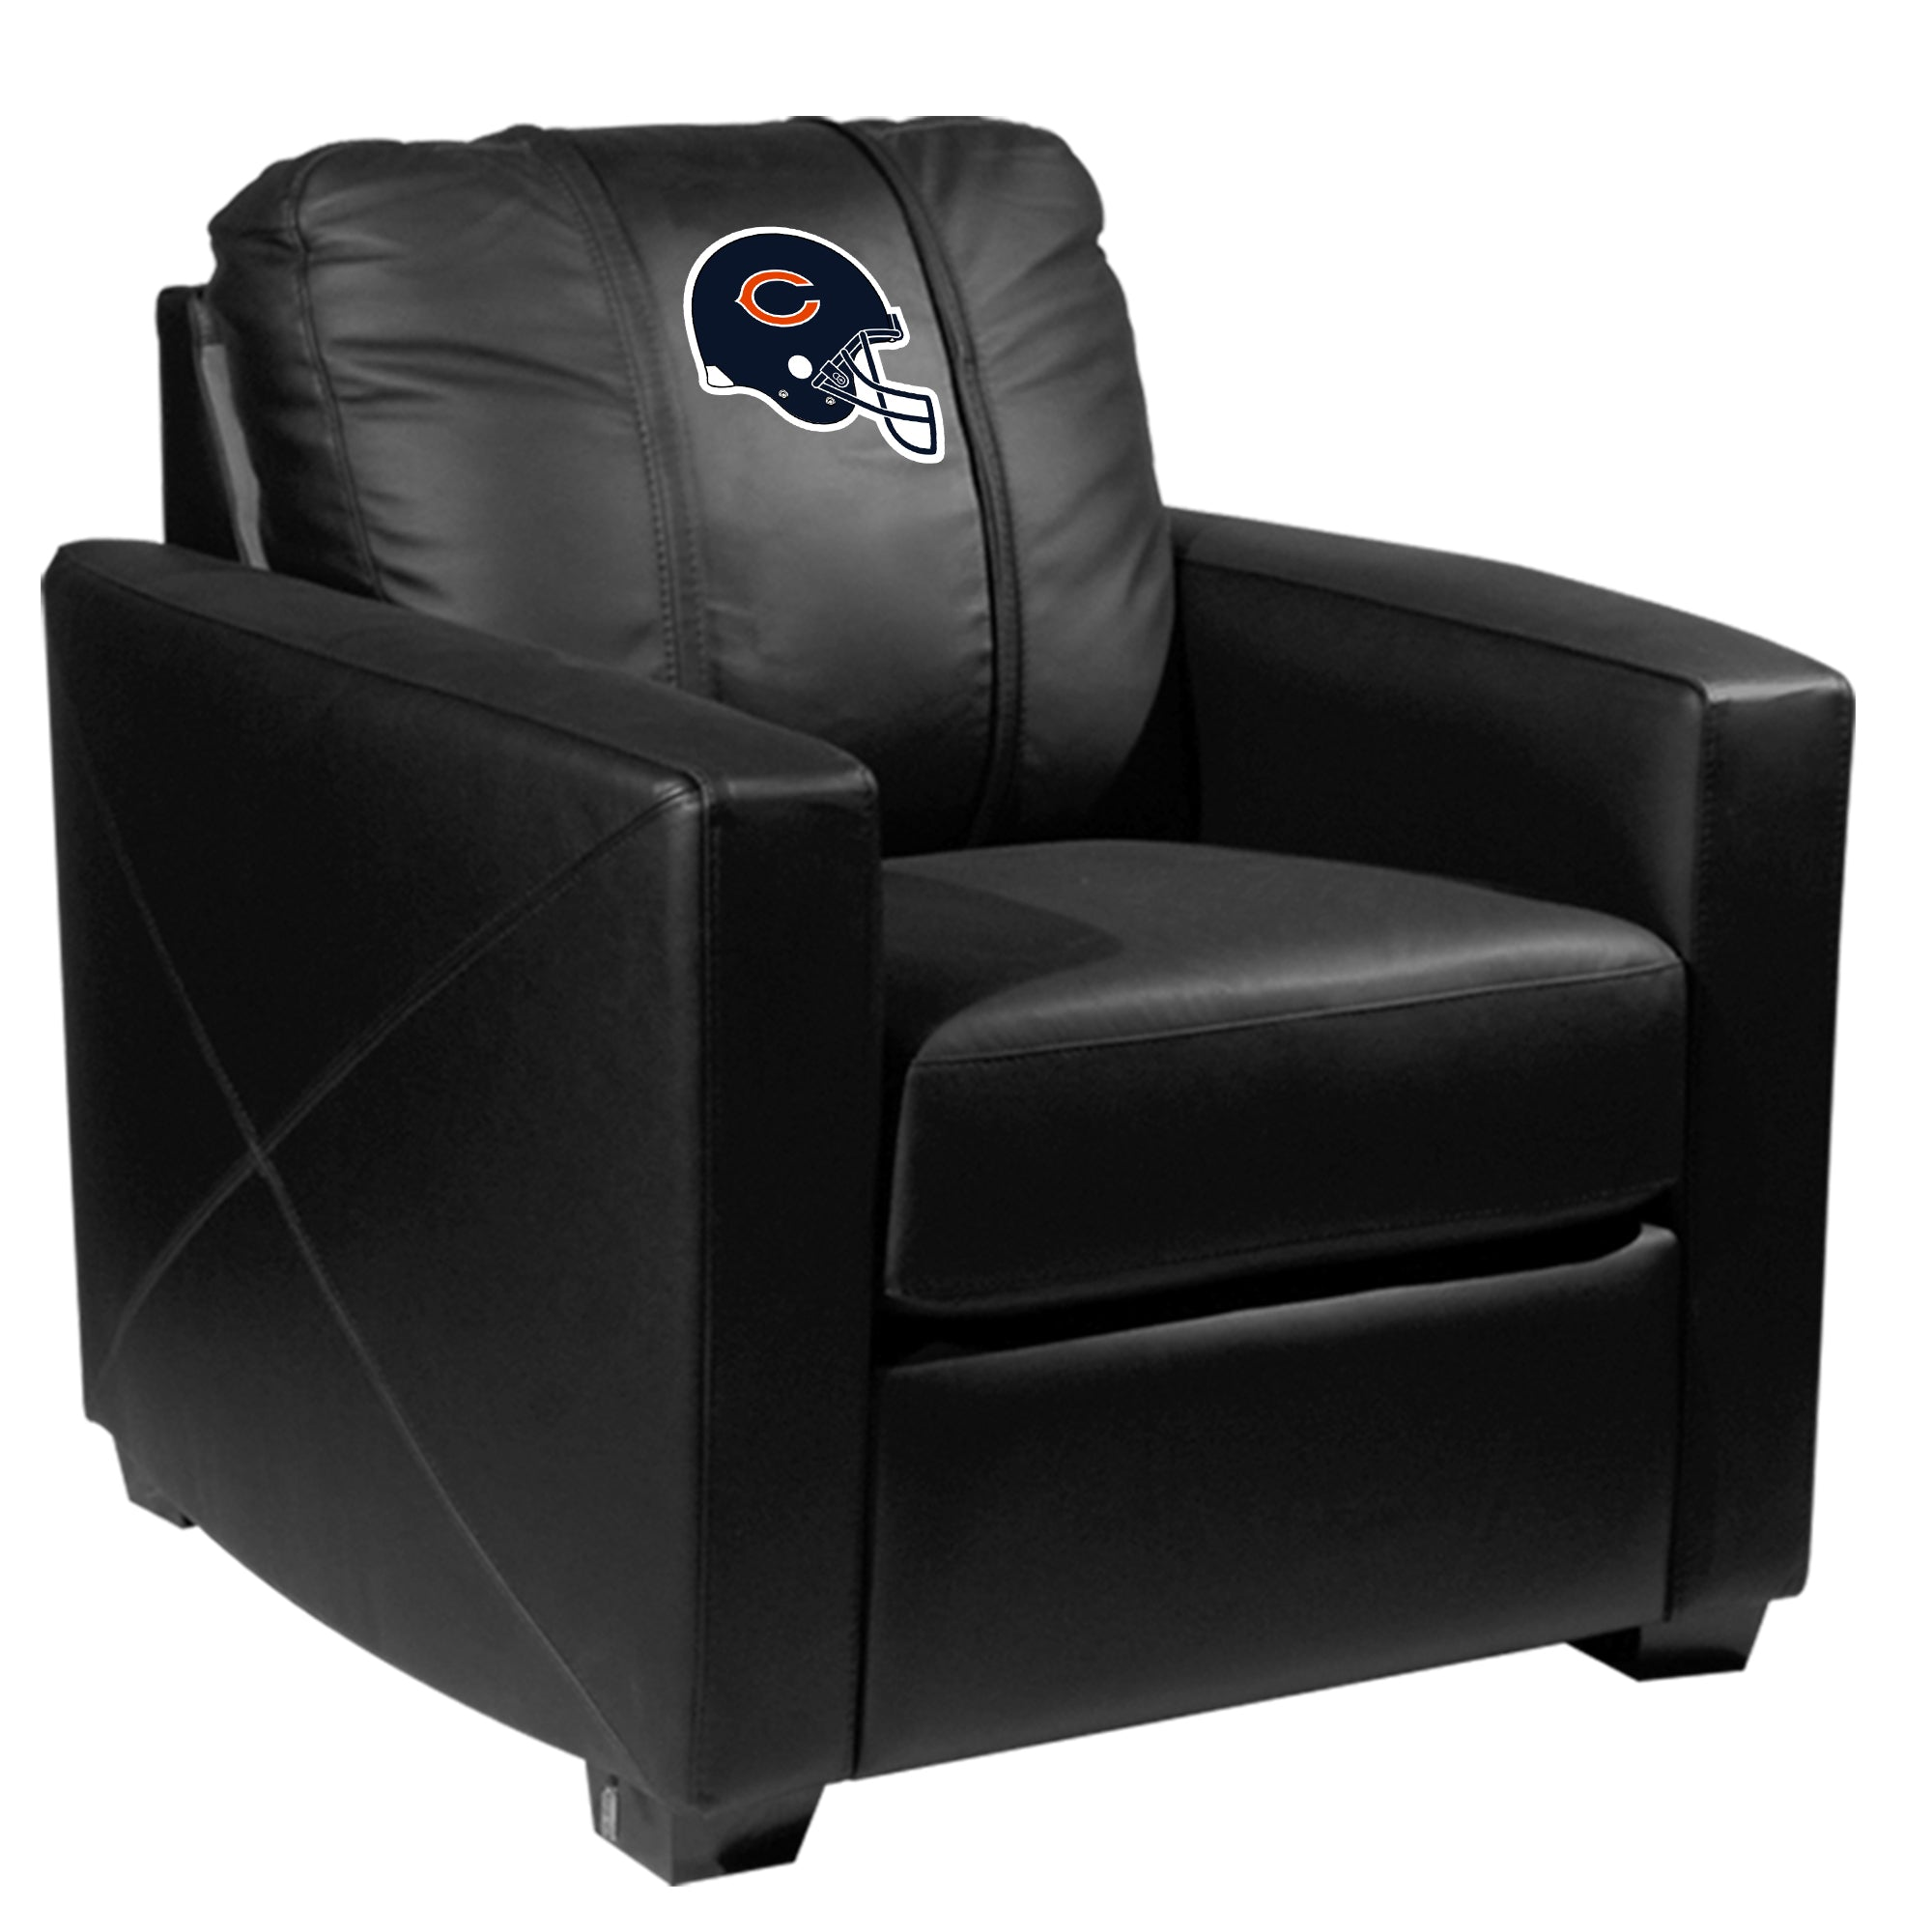 Silver Club Chair with  Chicago Bears Helmet Logo